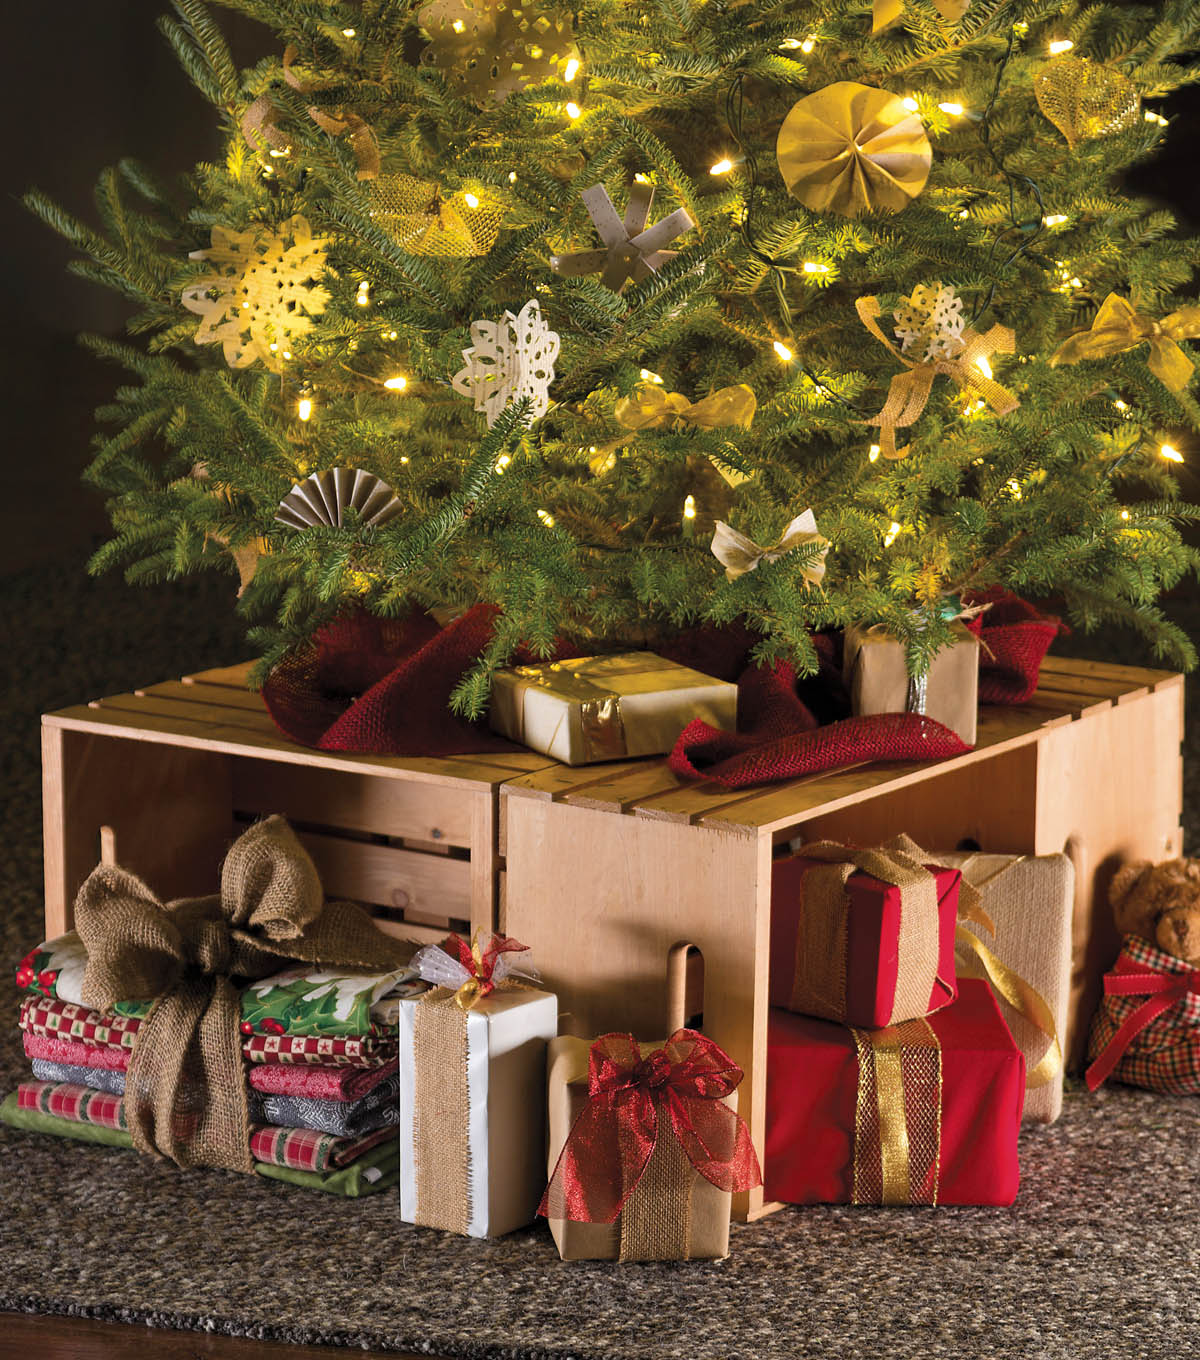 Christmas Tree Crate Stand Joann